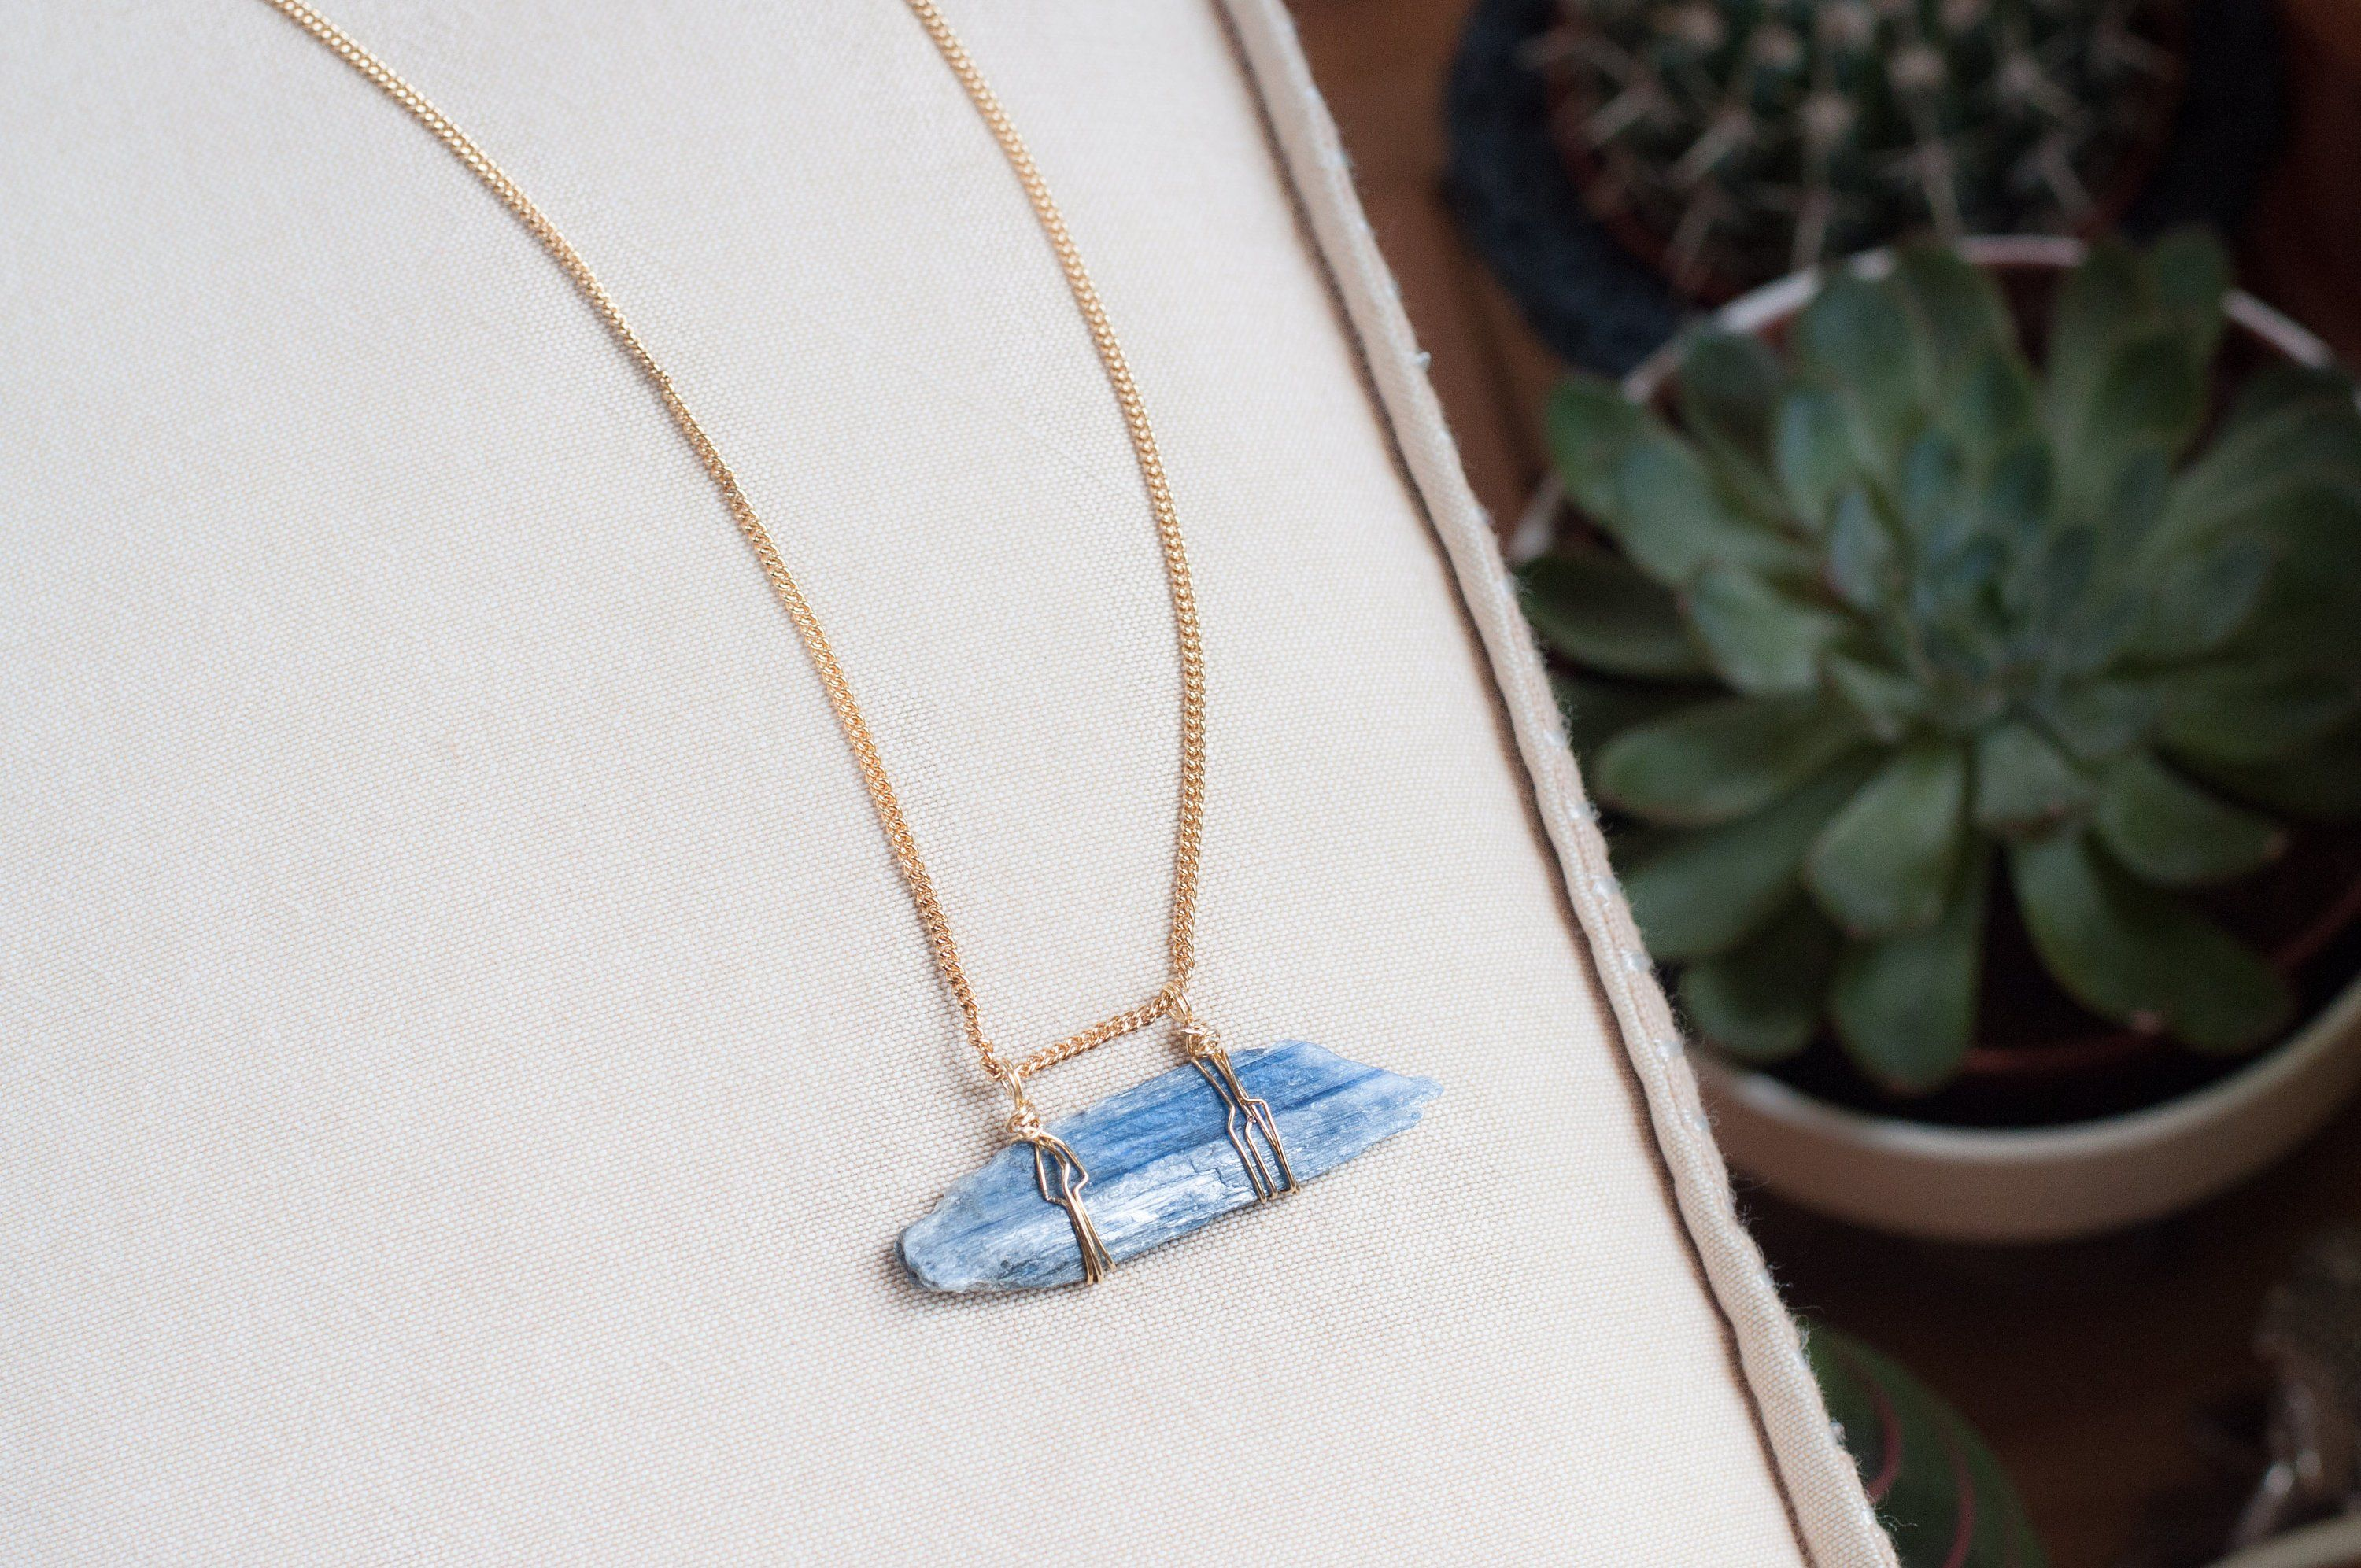 Geometric Gold Necklace Blue Crystal Necklace Stone Jewelry Blue Kyanite Selenite Pendant Boho Chic Crystal Necklace